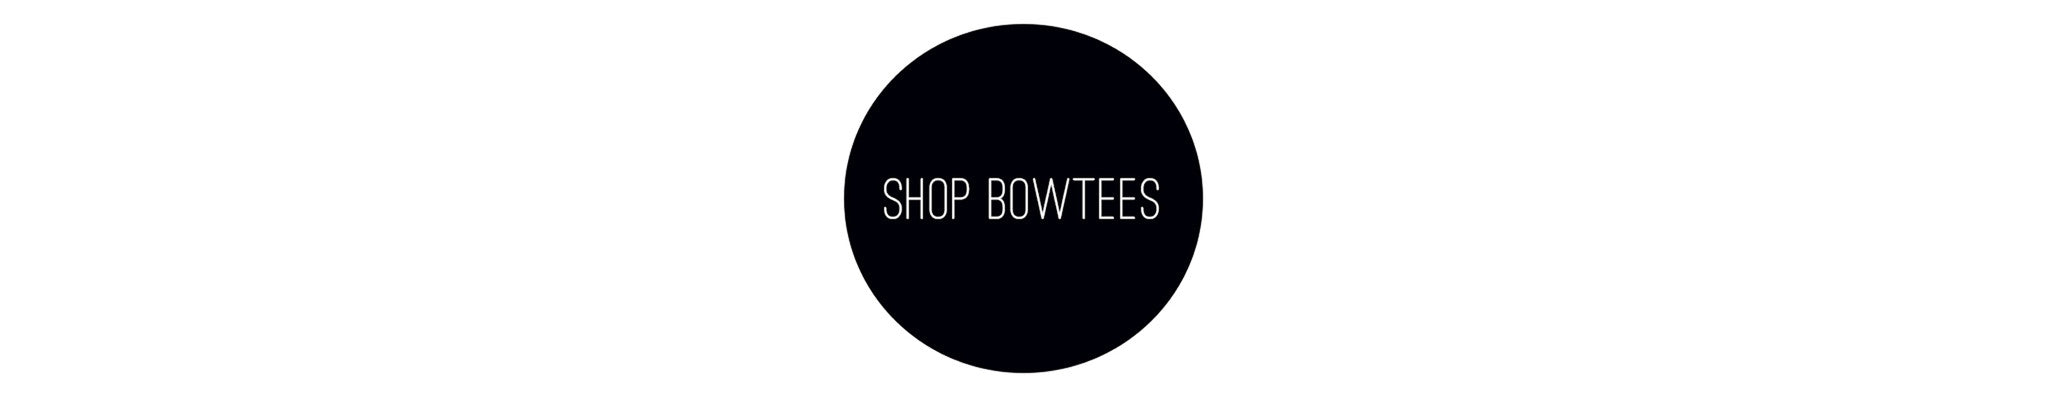 Shop Bowtees